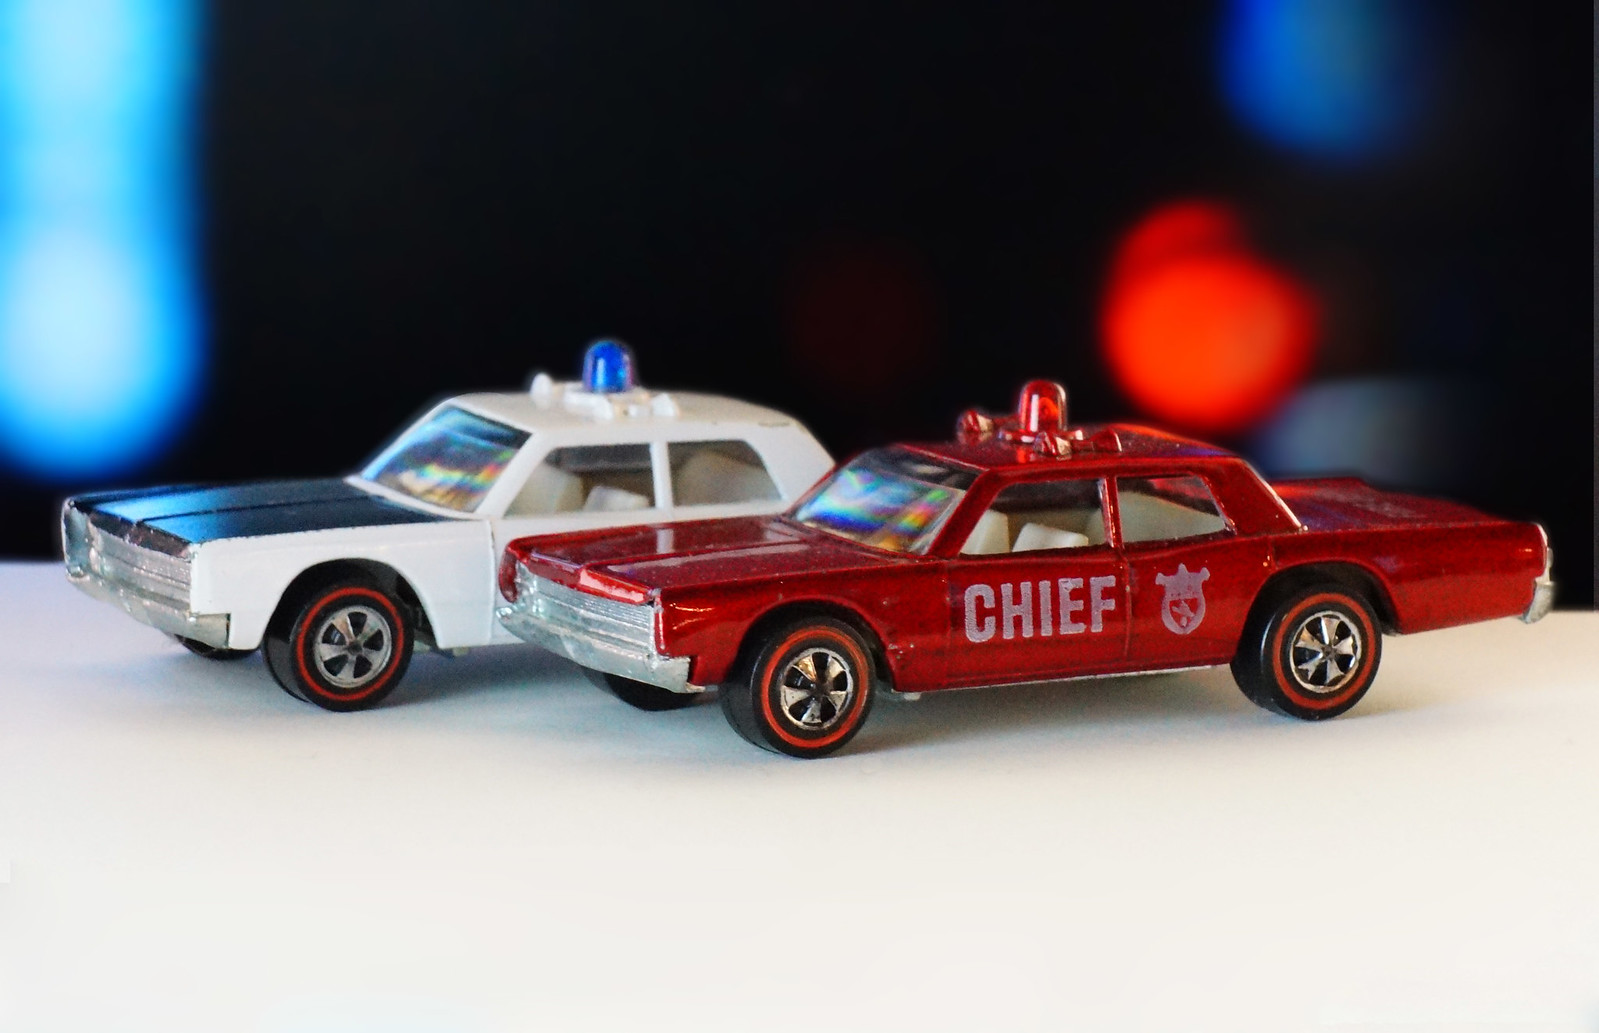 Hot Wheels Redline Fire Chief Red Siren